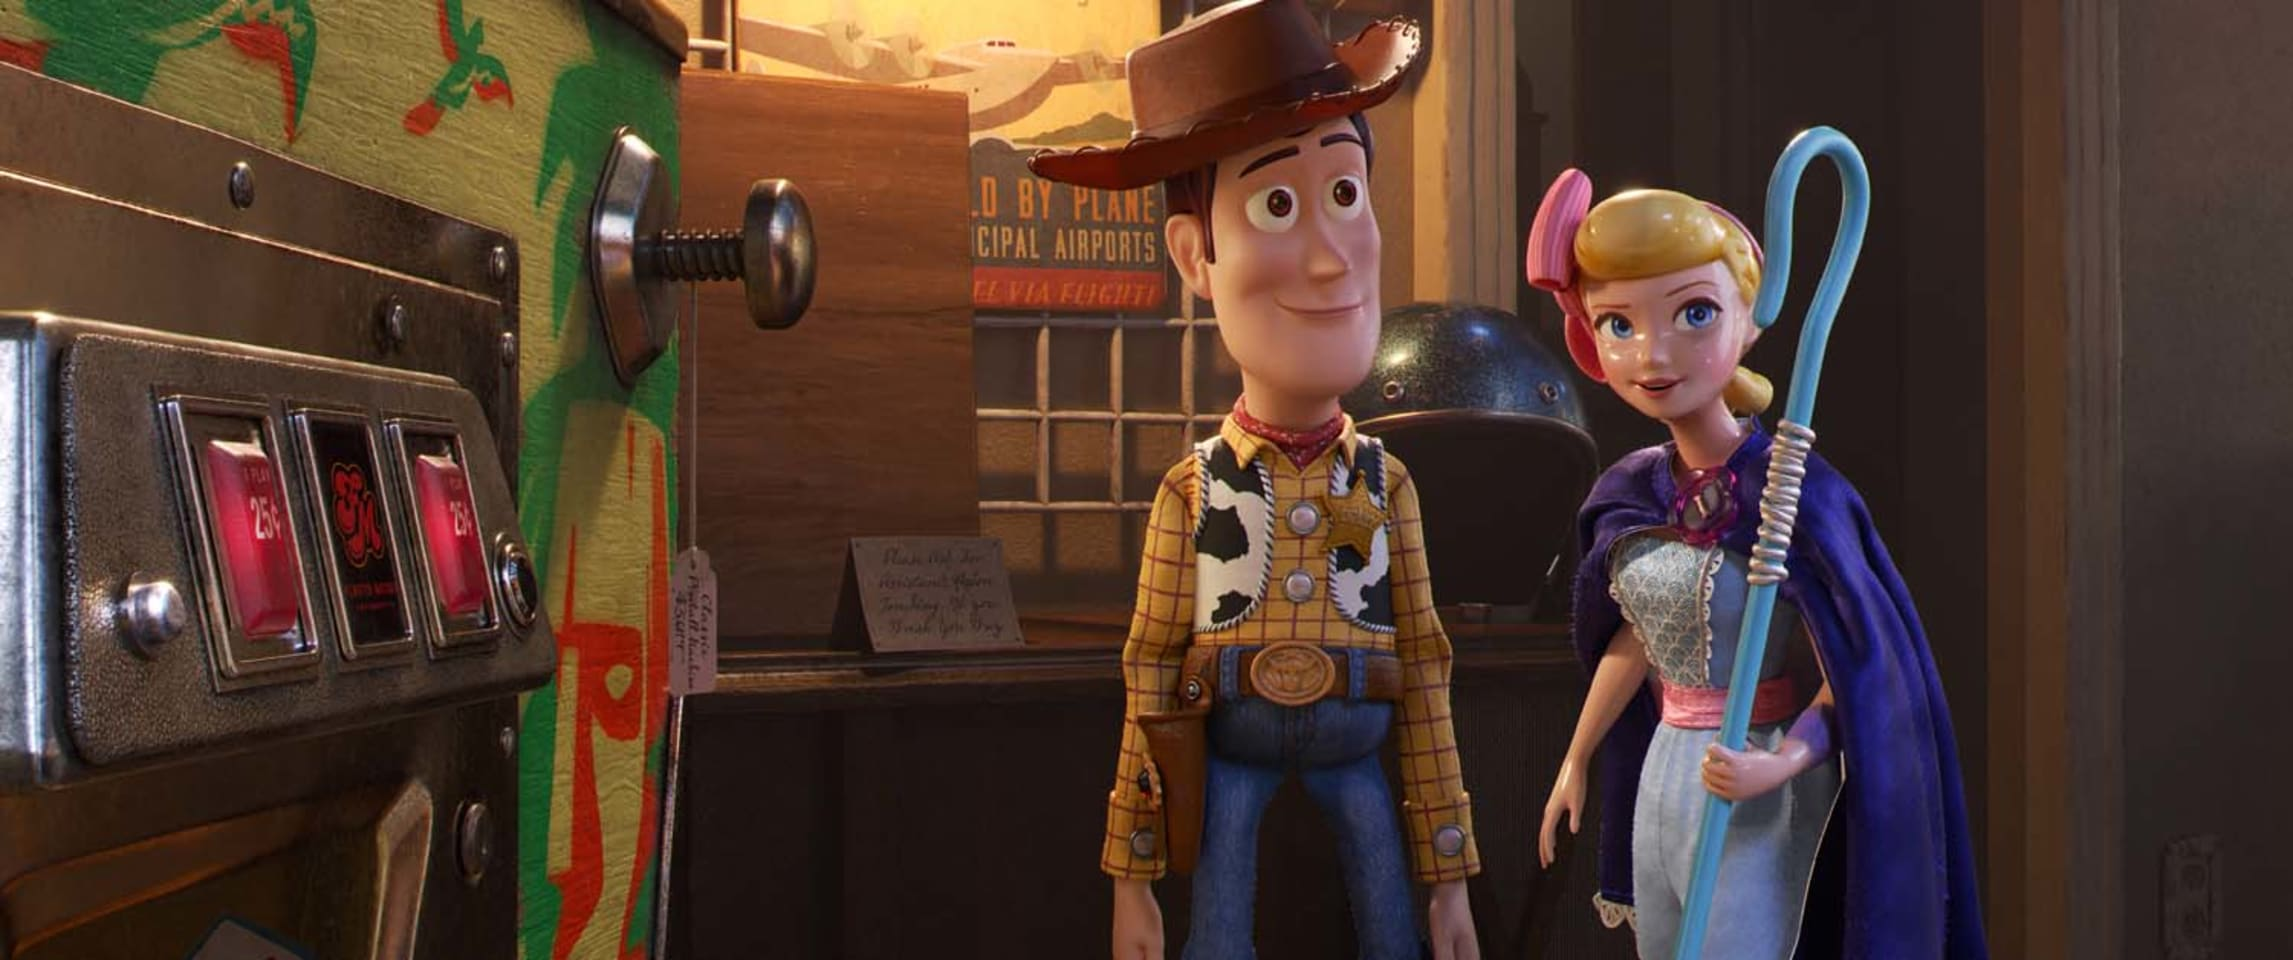 Toy Story 4 | Showtimes, Tickets & Reviews - Atom Tickets